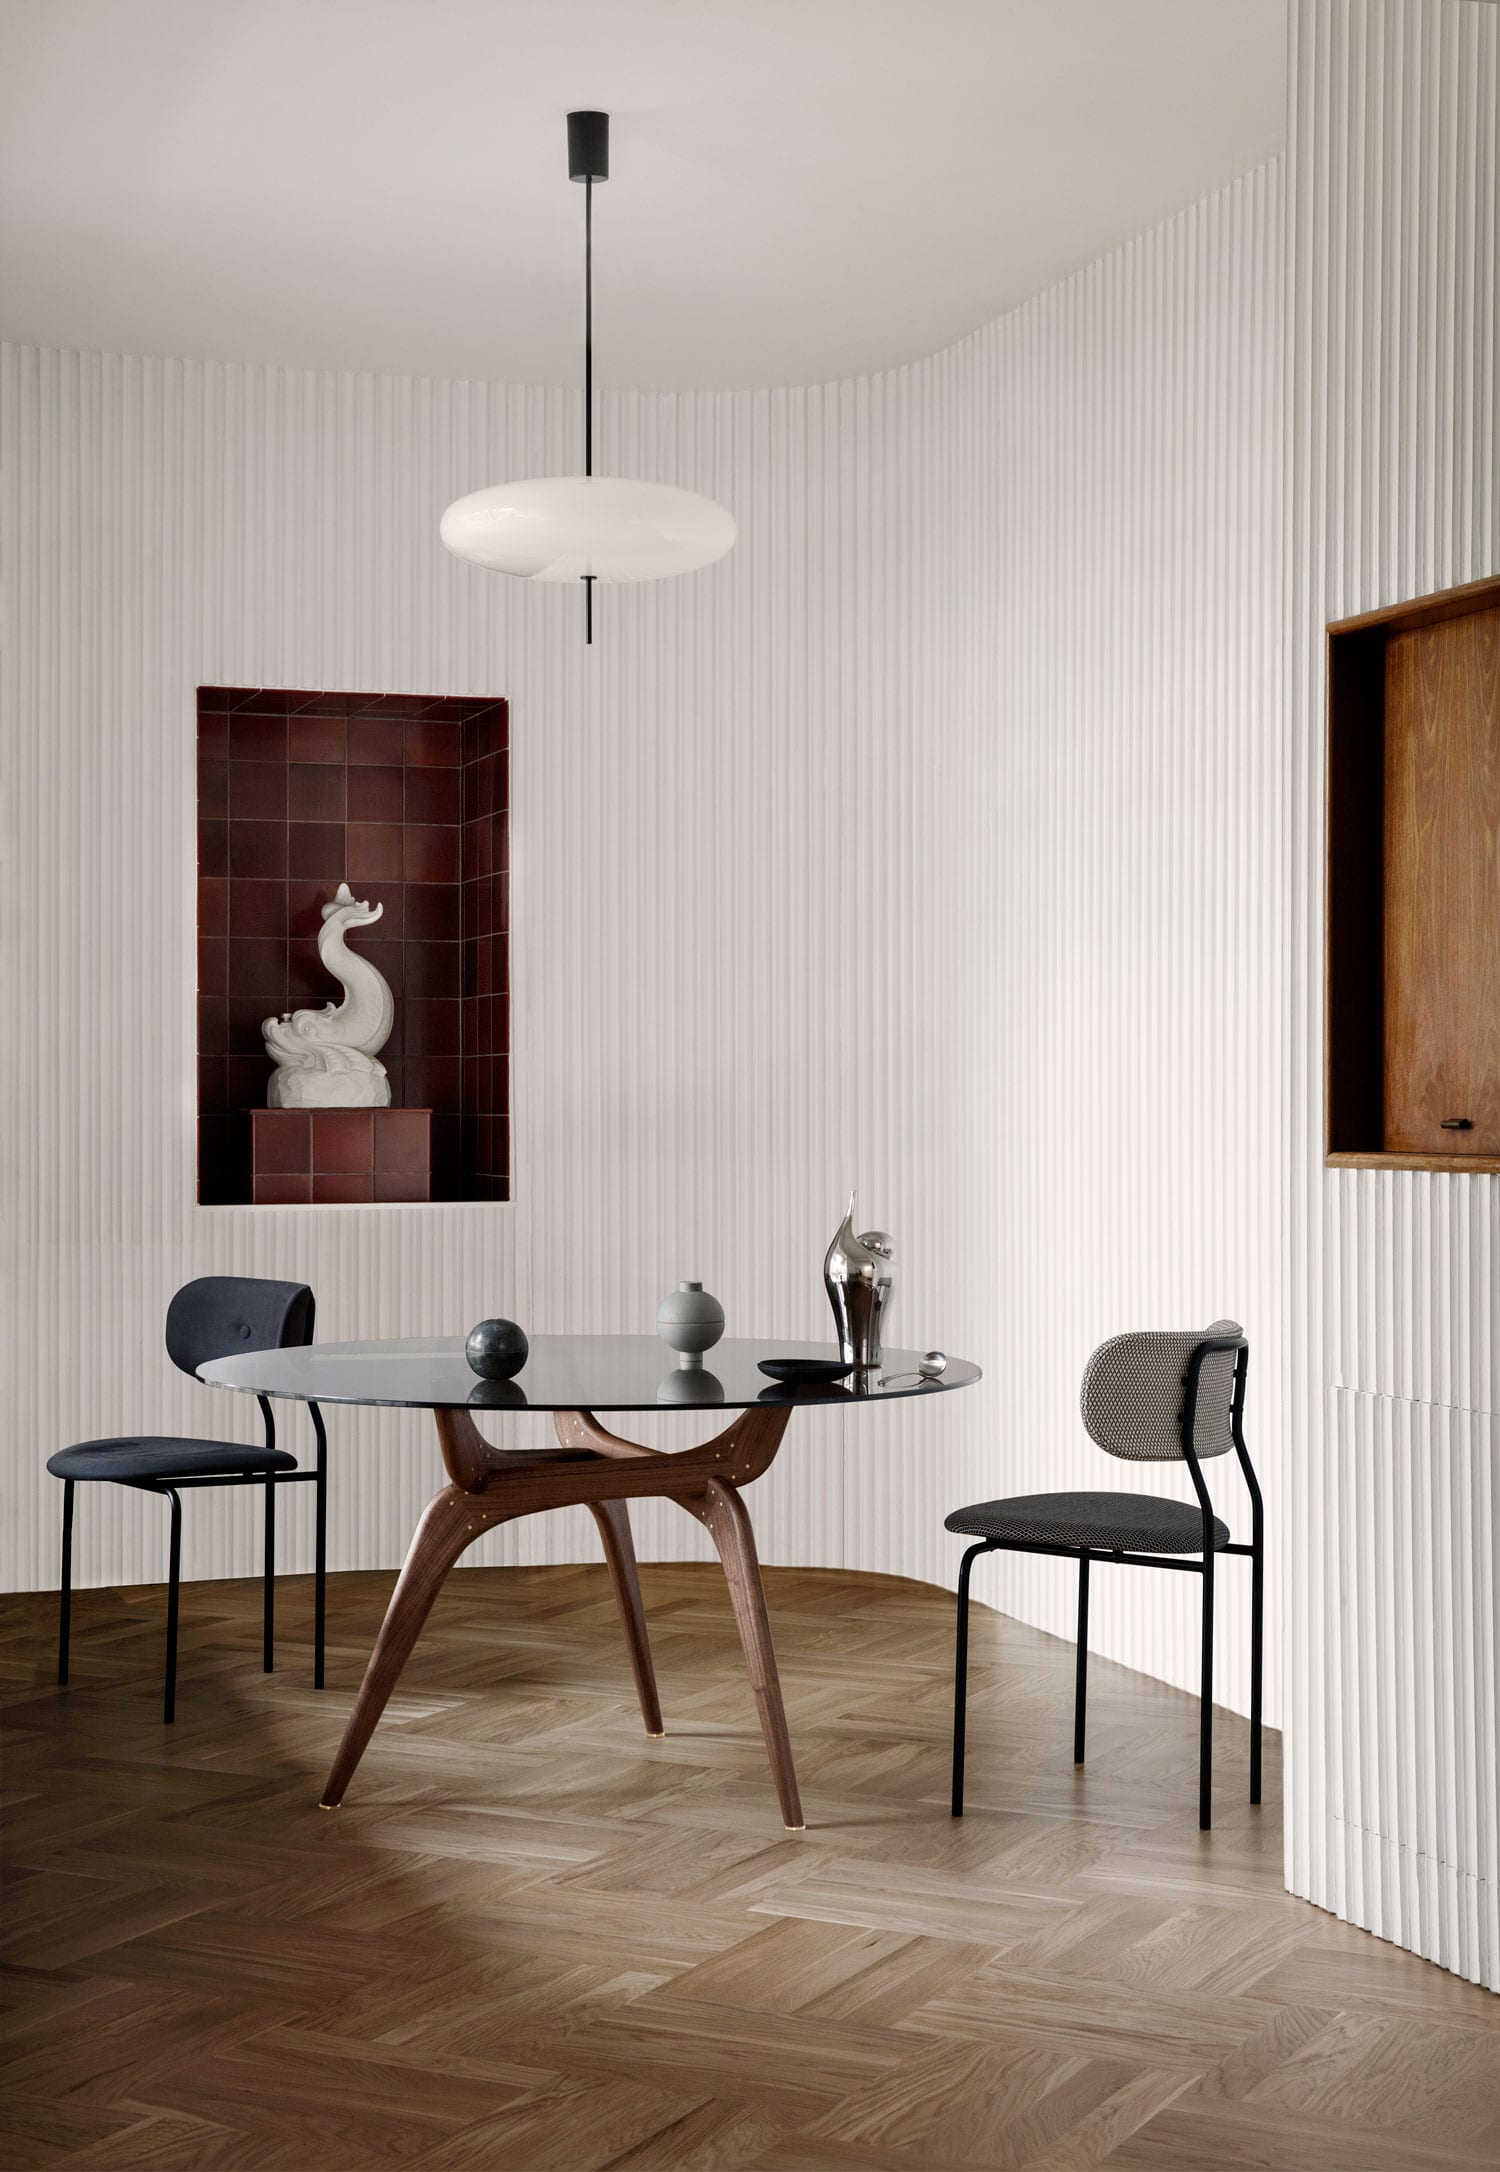 Brdr Kruger at IMM Cologne 2018 | Yellowtrace